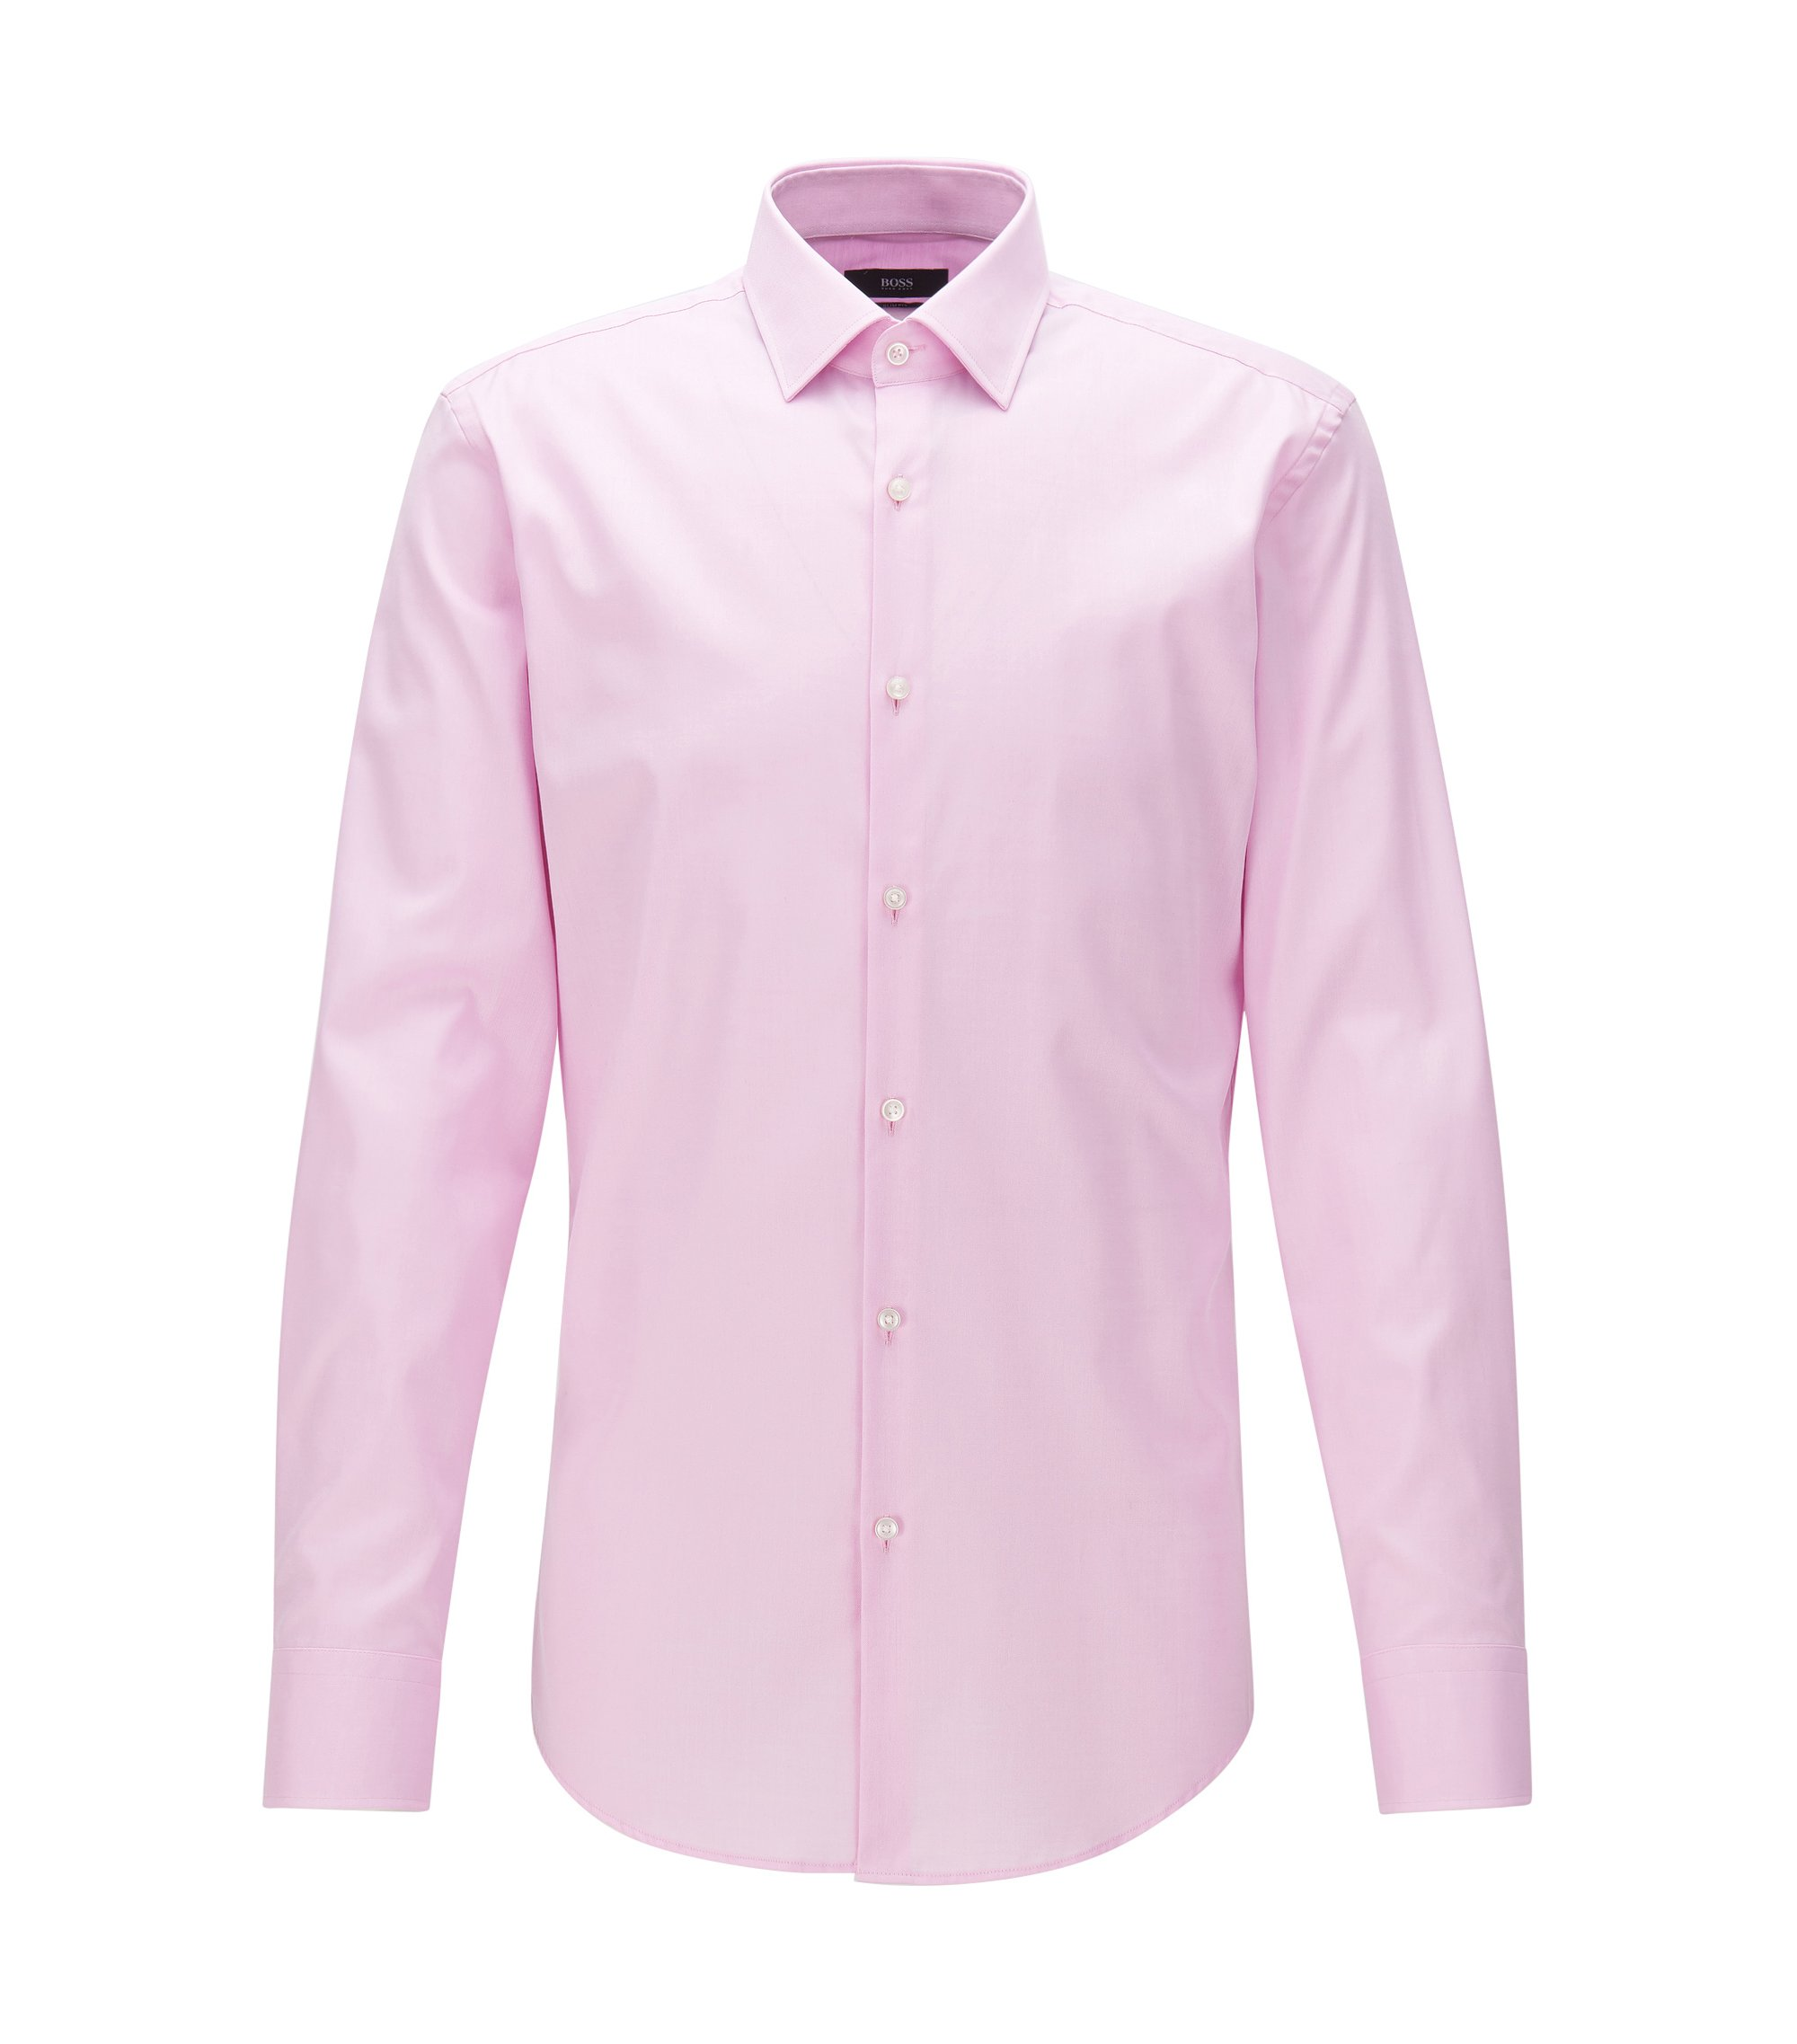 Cotton twill slim-fit shirt with contrast details, light pink